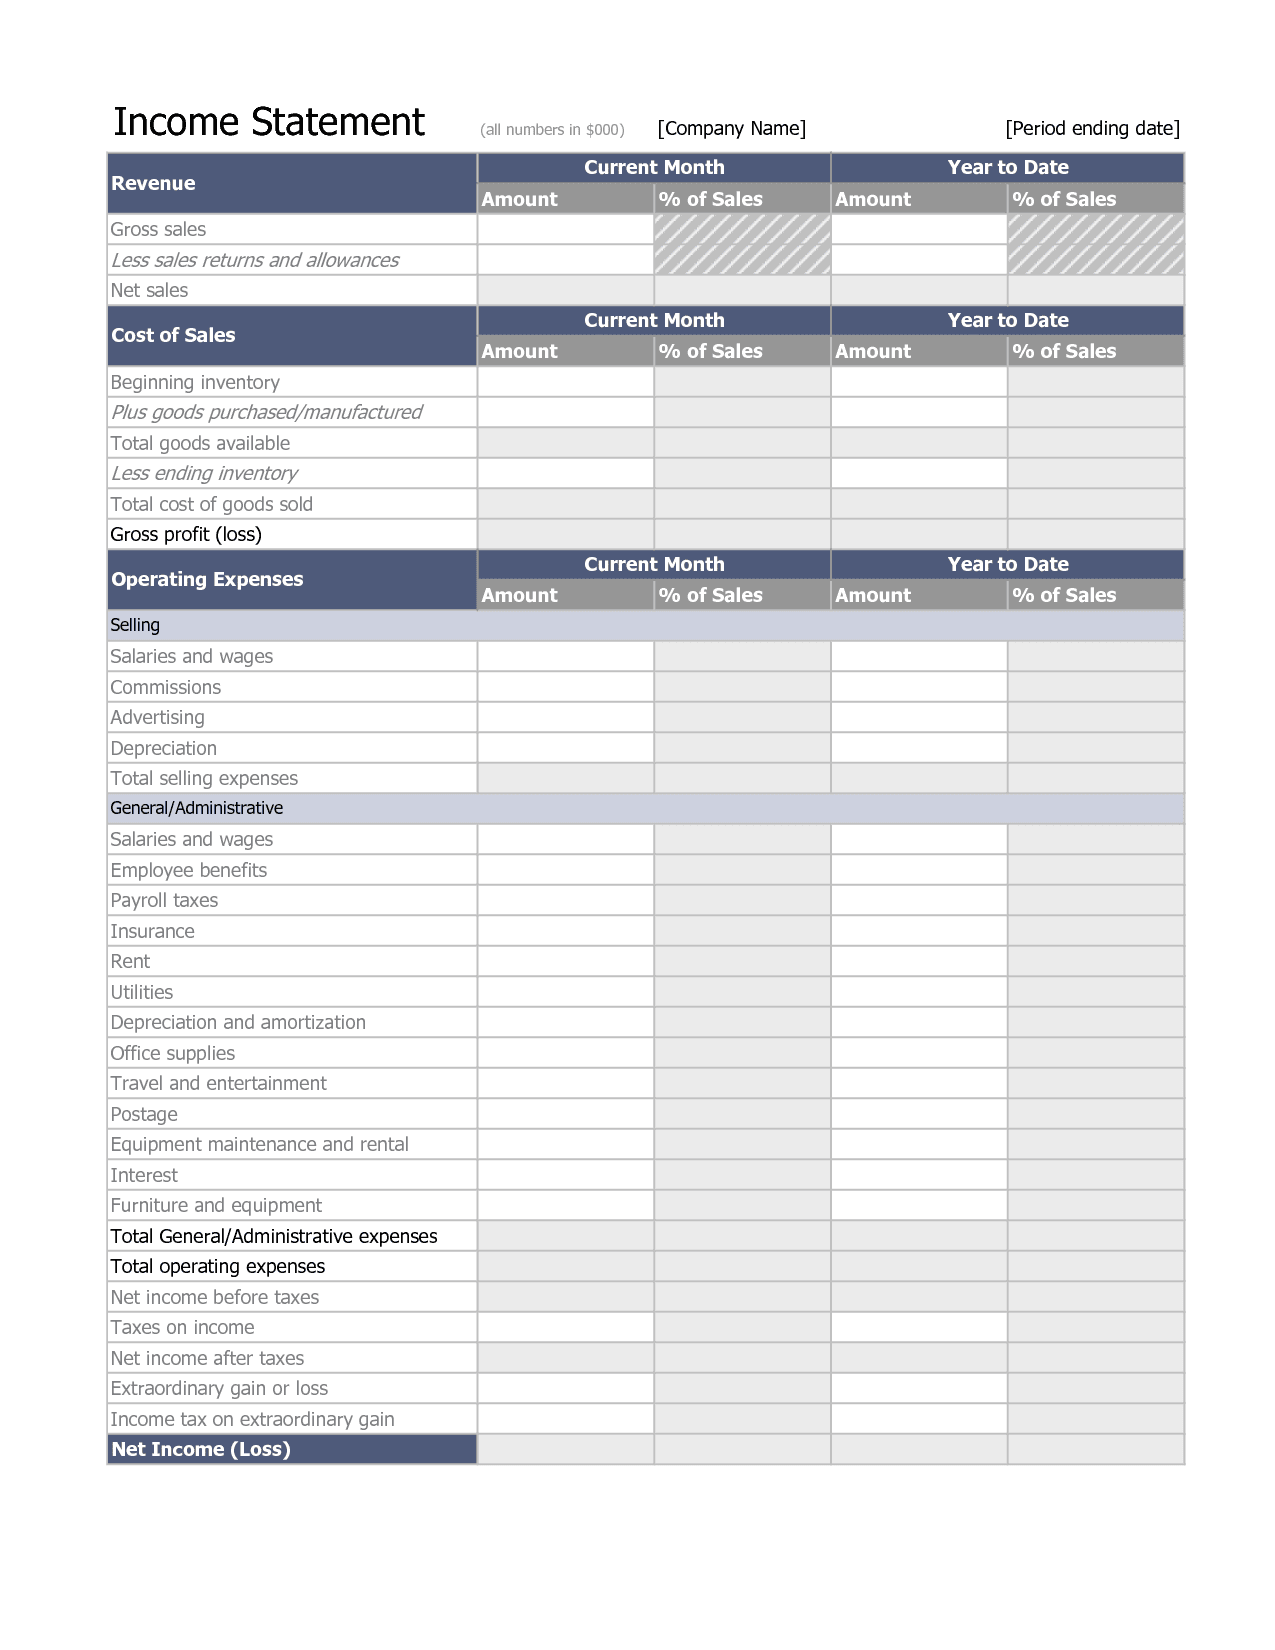 Income And Expense Statement Template Excel Income And Expense Statement Template Expense Spreadsheet Spreadsheet Templates for Business Income Spreadsheet Income Statement Templat Expense Spreadsheet Spreadsheet Templates for Business Income Spreadsheet Income Statement Templat Simple Income And Expense Form